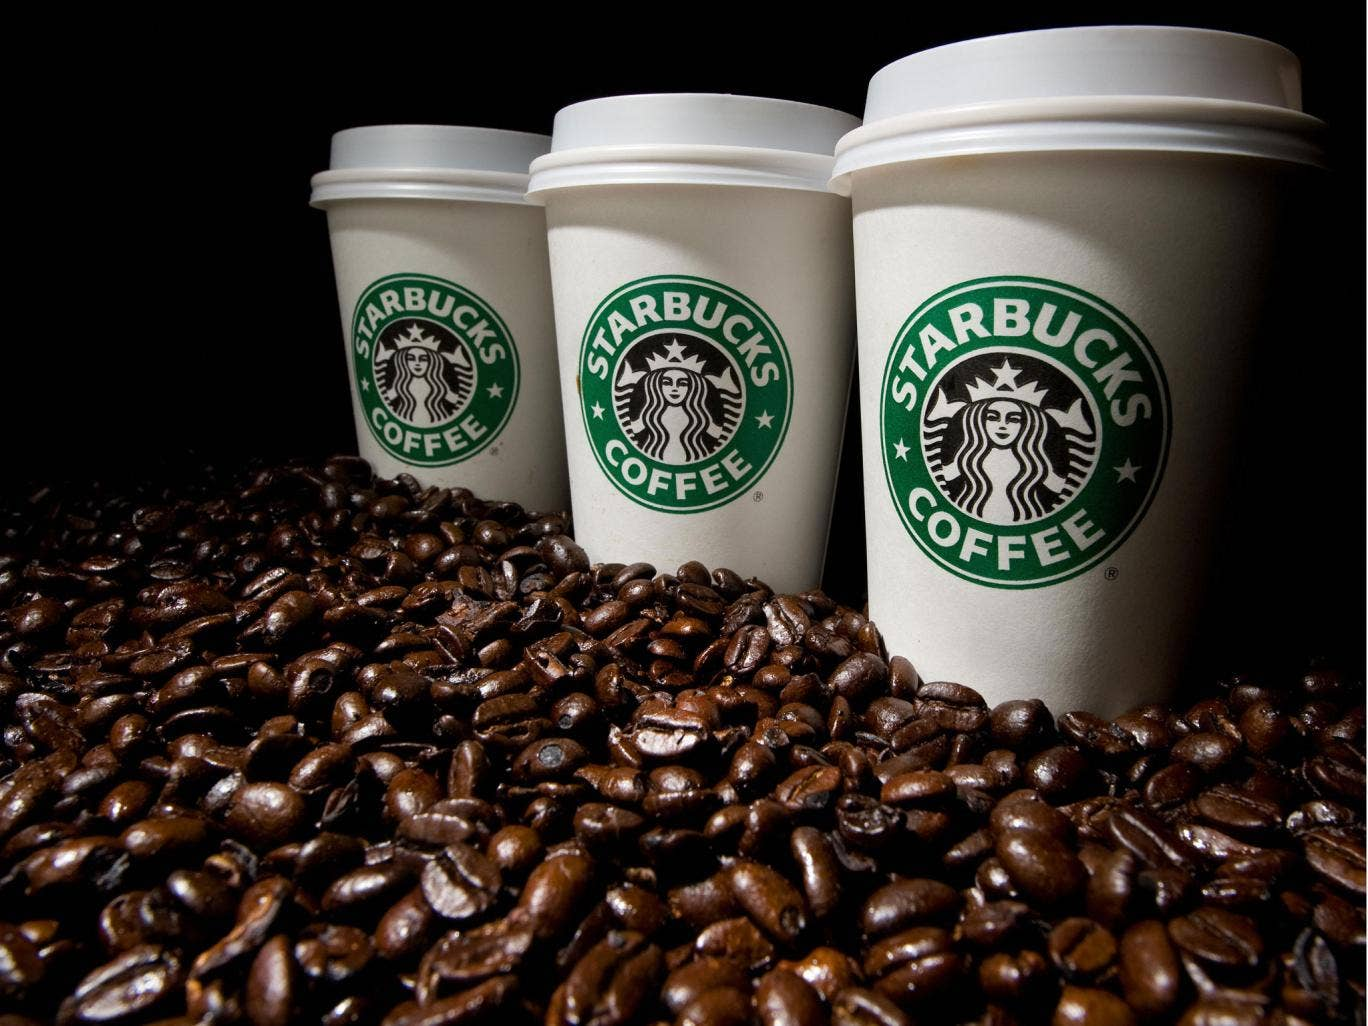 Customers can get their caffeine fix on the move